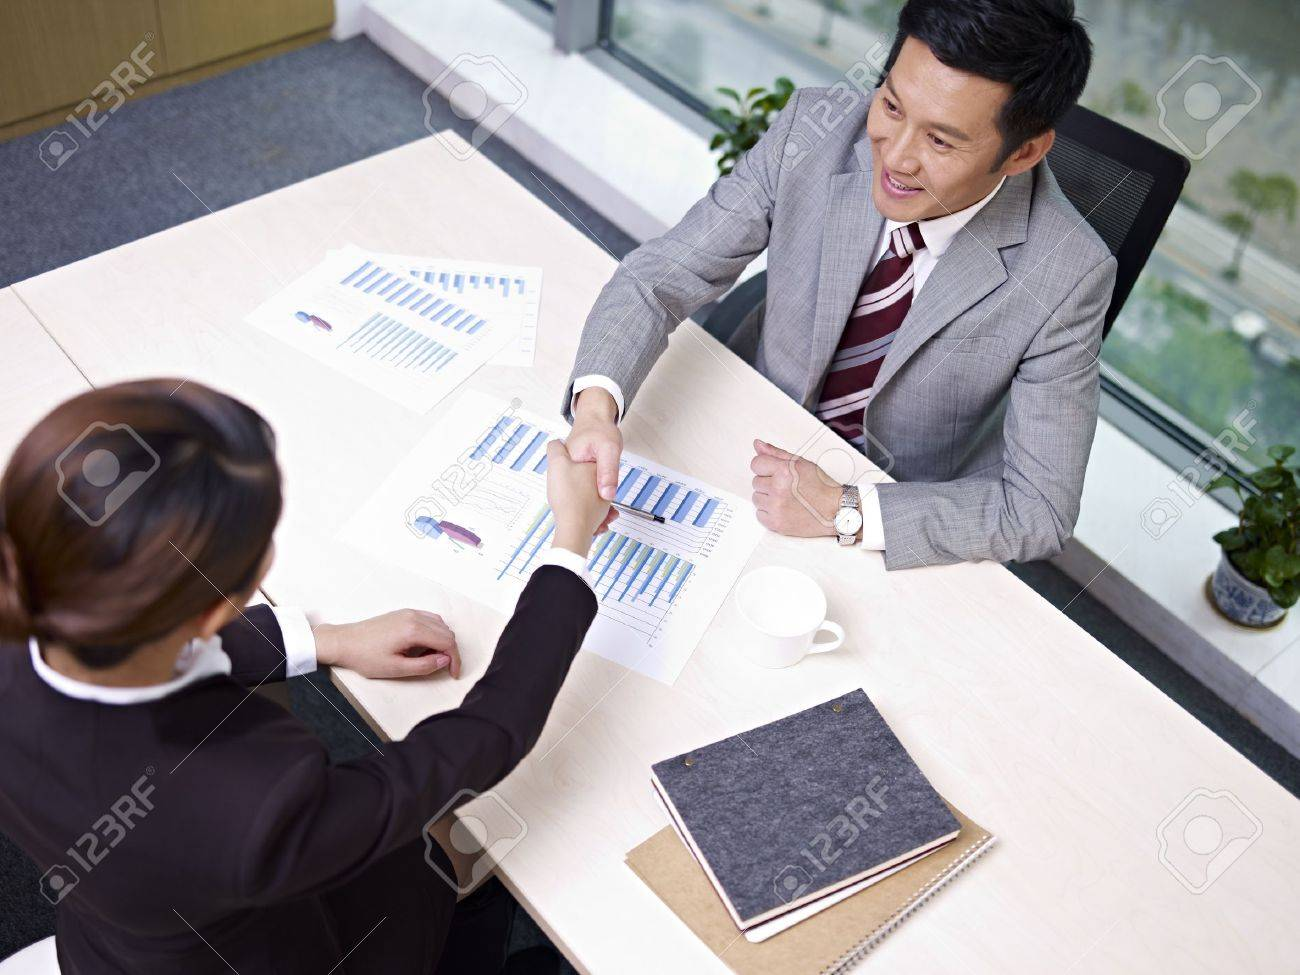 asian business executives shaking hands in office, high angle view Stock Photo - 18194983